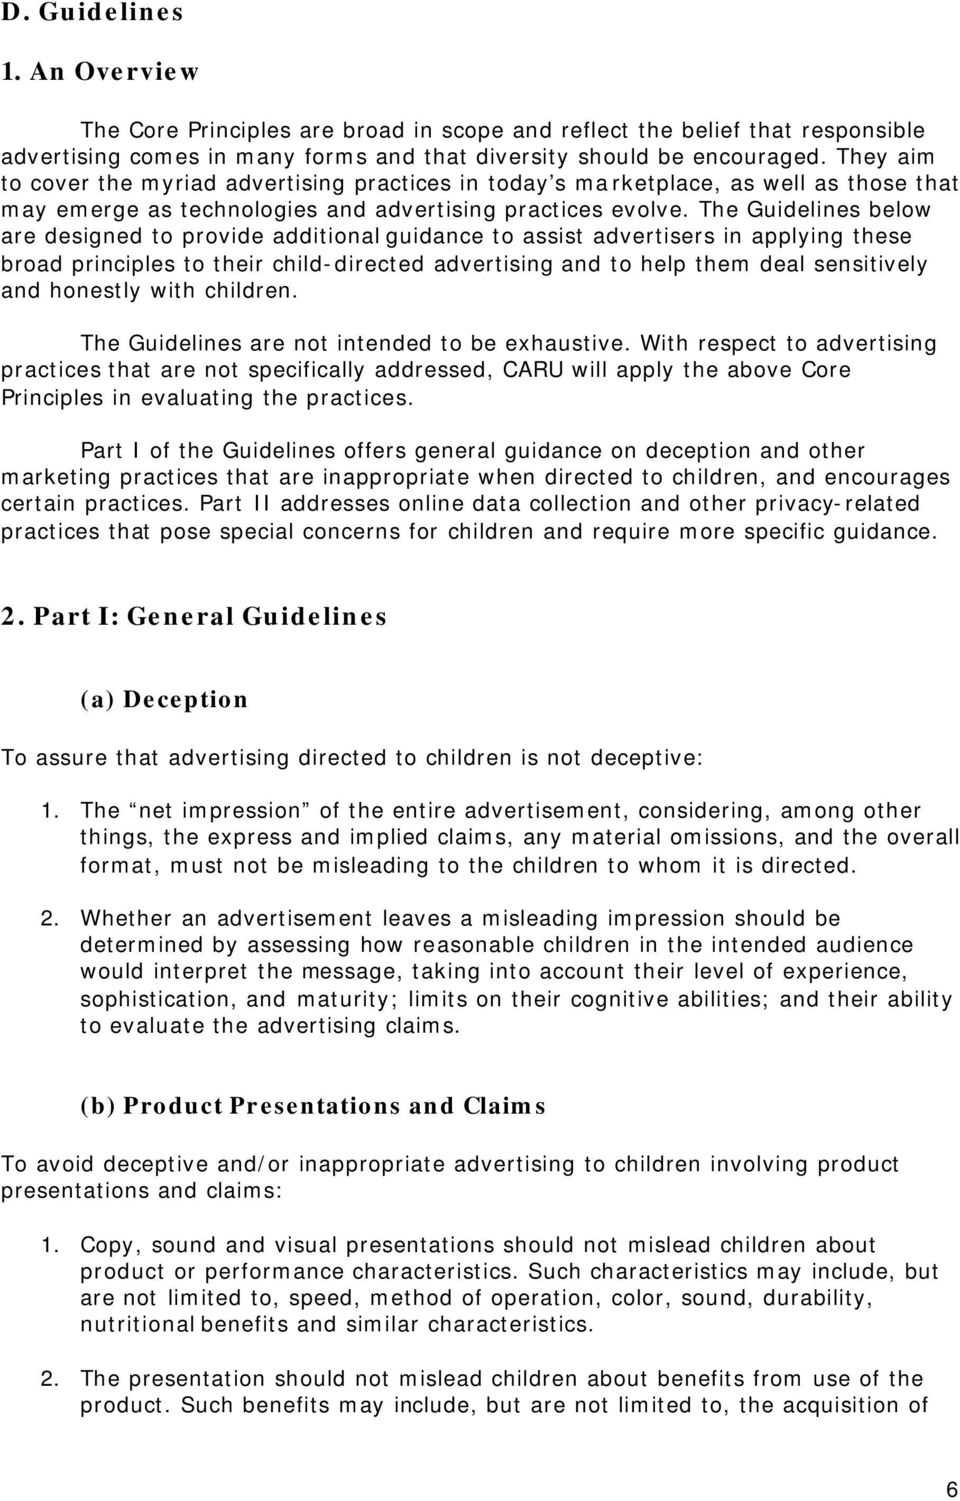 The Guidelines below are designed to provide additional guidance to assist advertisers in applying these broad principles to their child-directed advertising and to help them deal sensitively and